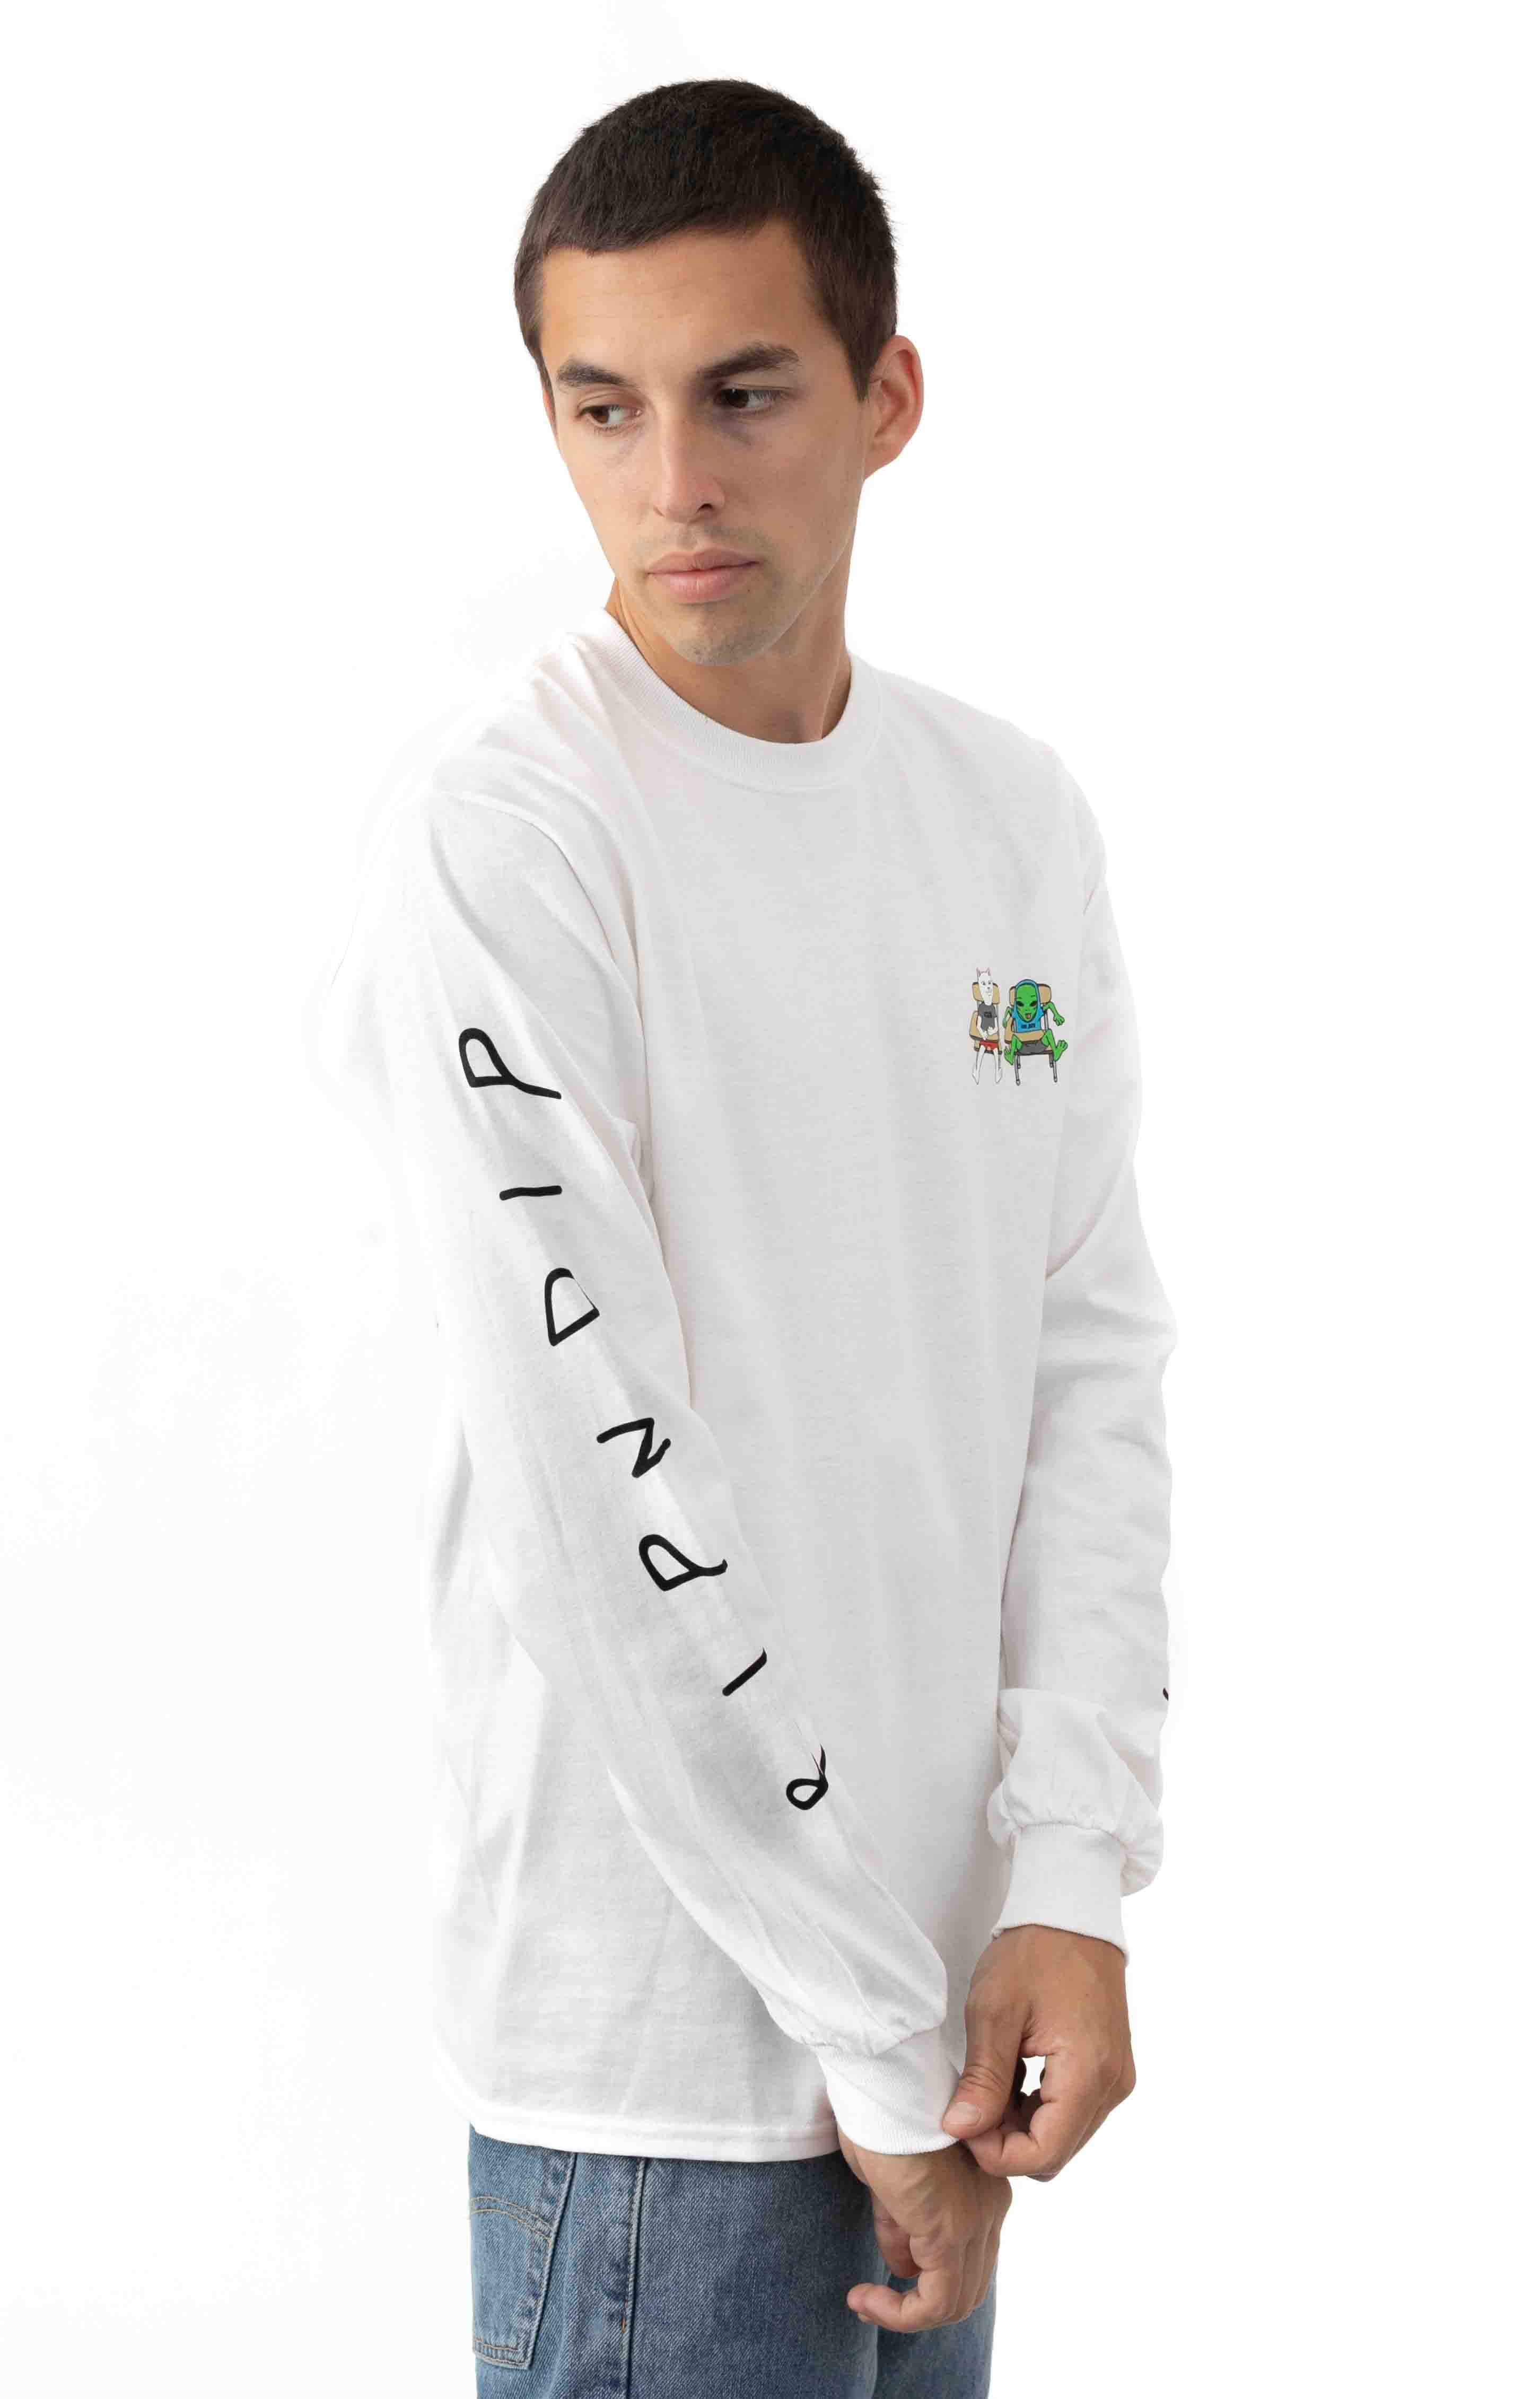 Butts Up L/S Shirt - White  3